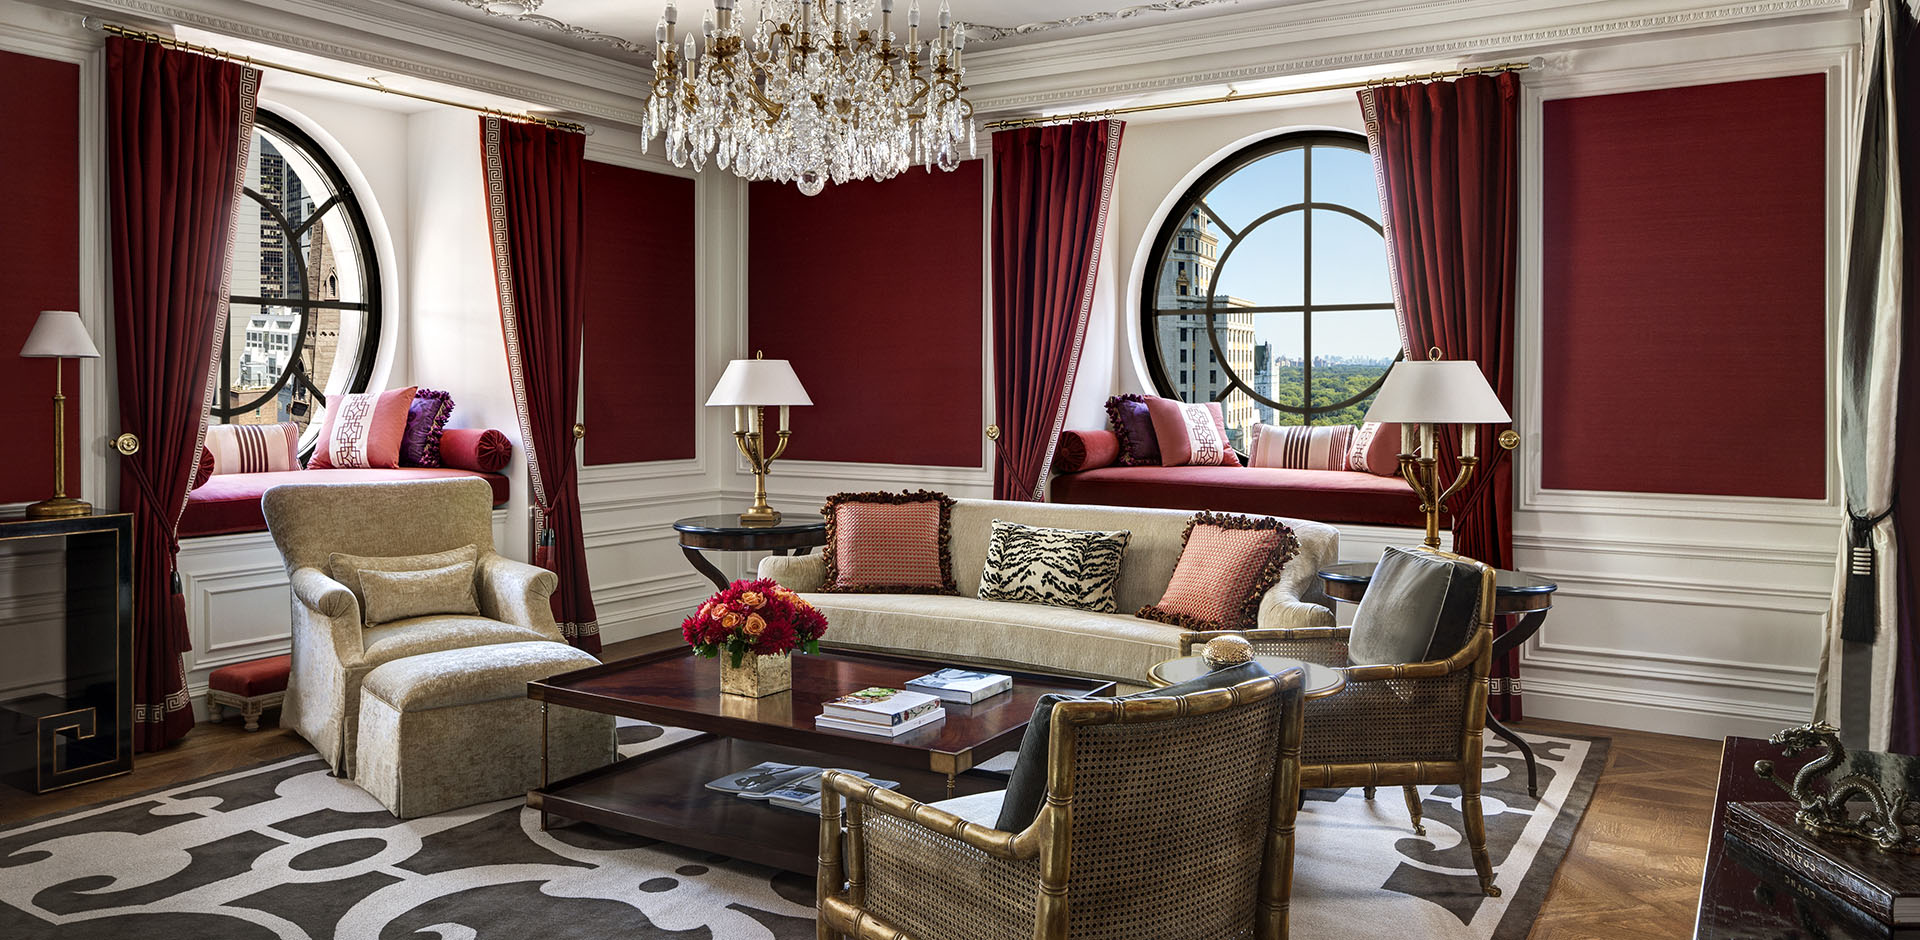 St Regis, New York - Imperial Living Room